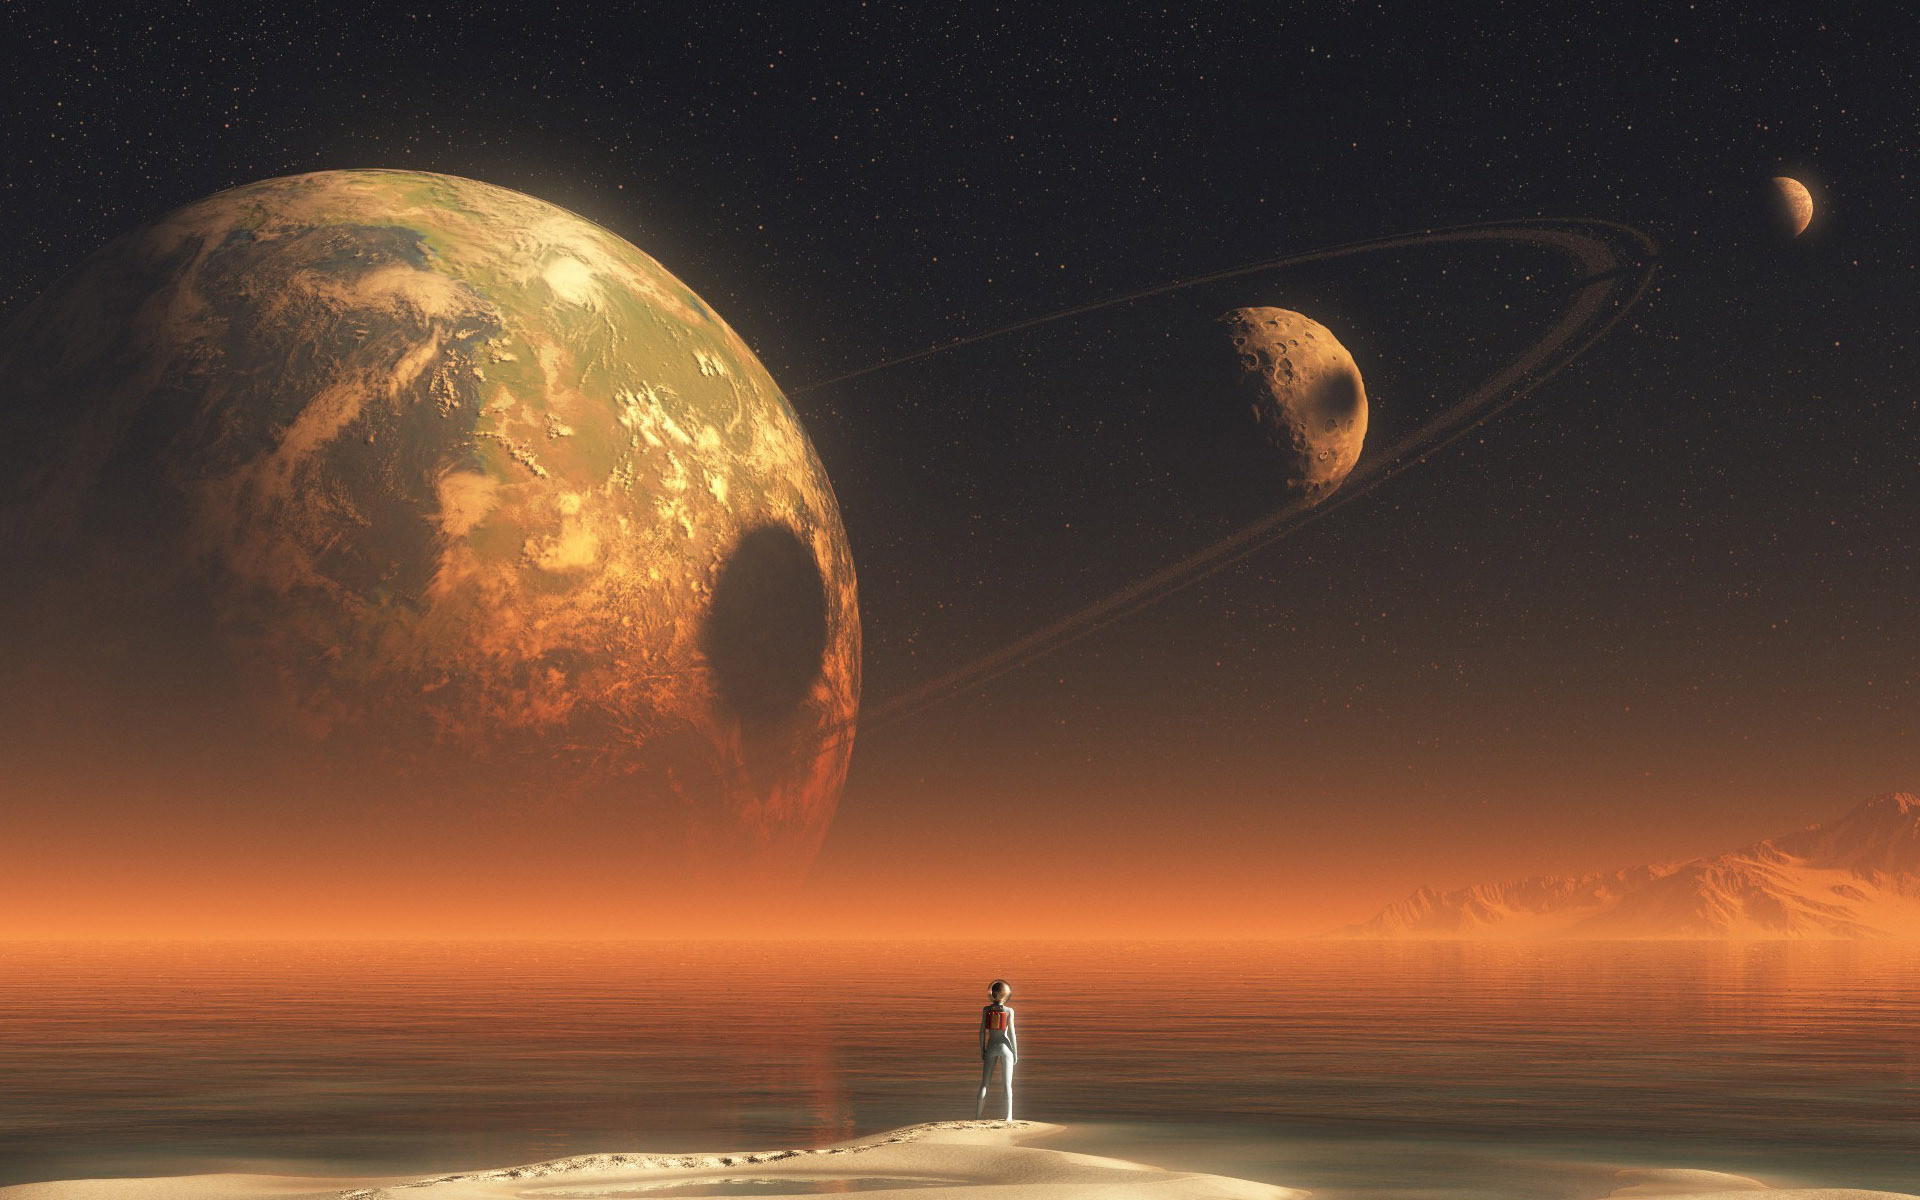 … Alien looking at the planet